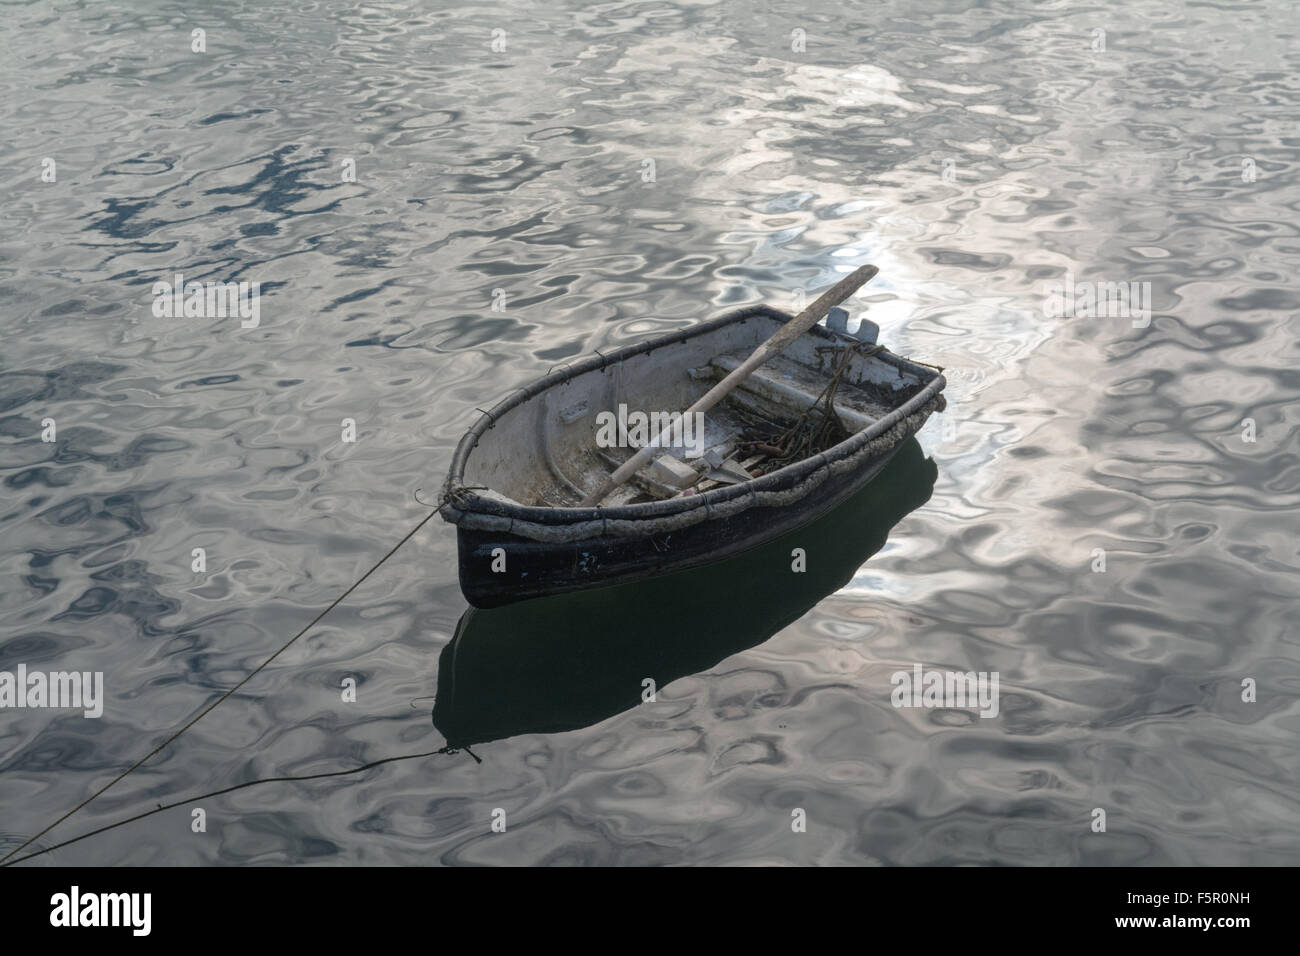 Small, old rowing boat in a harbour with bright light reflecting from surface - Stock Image